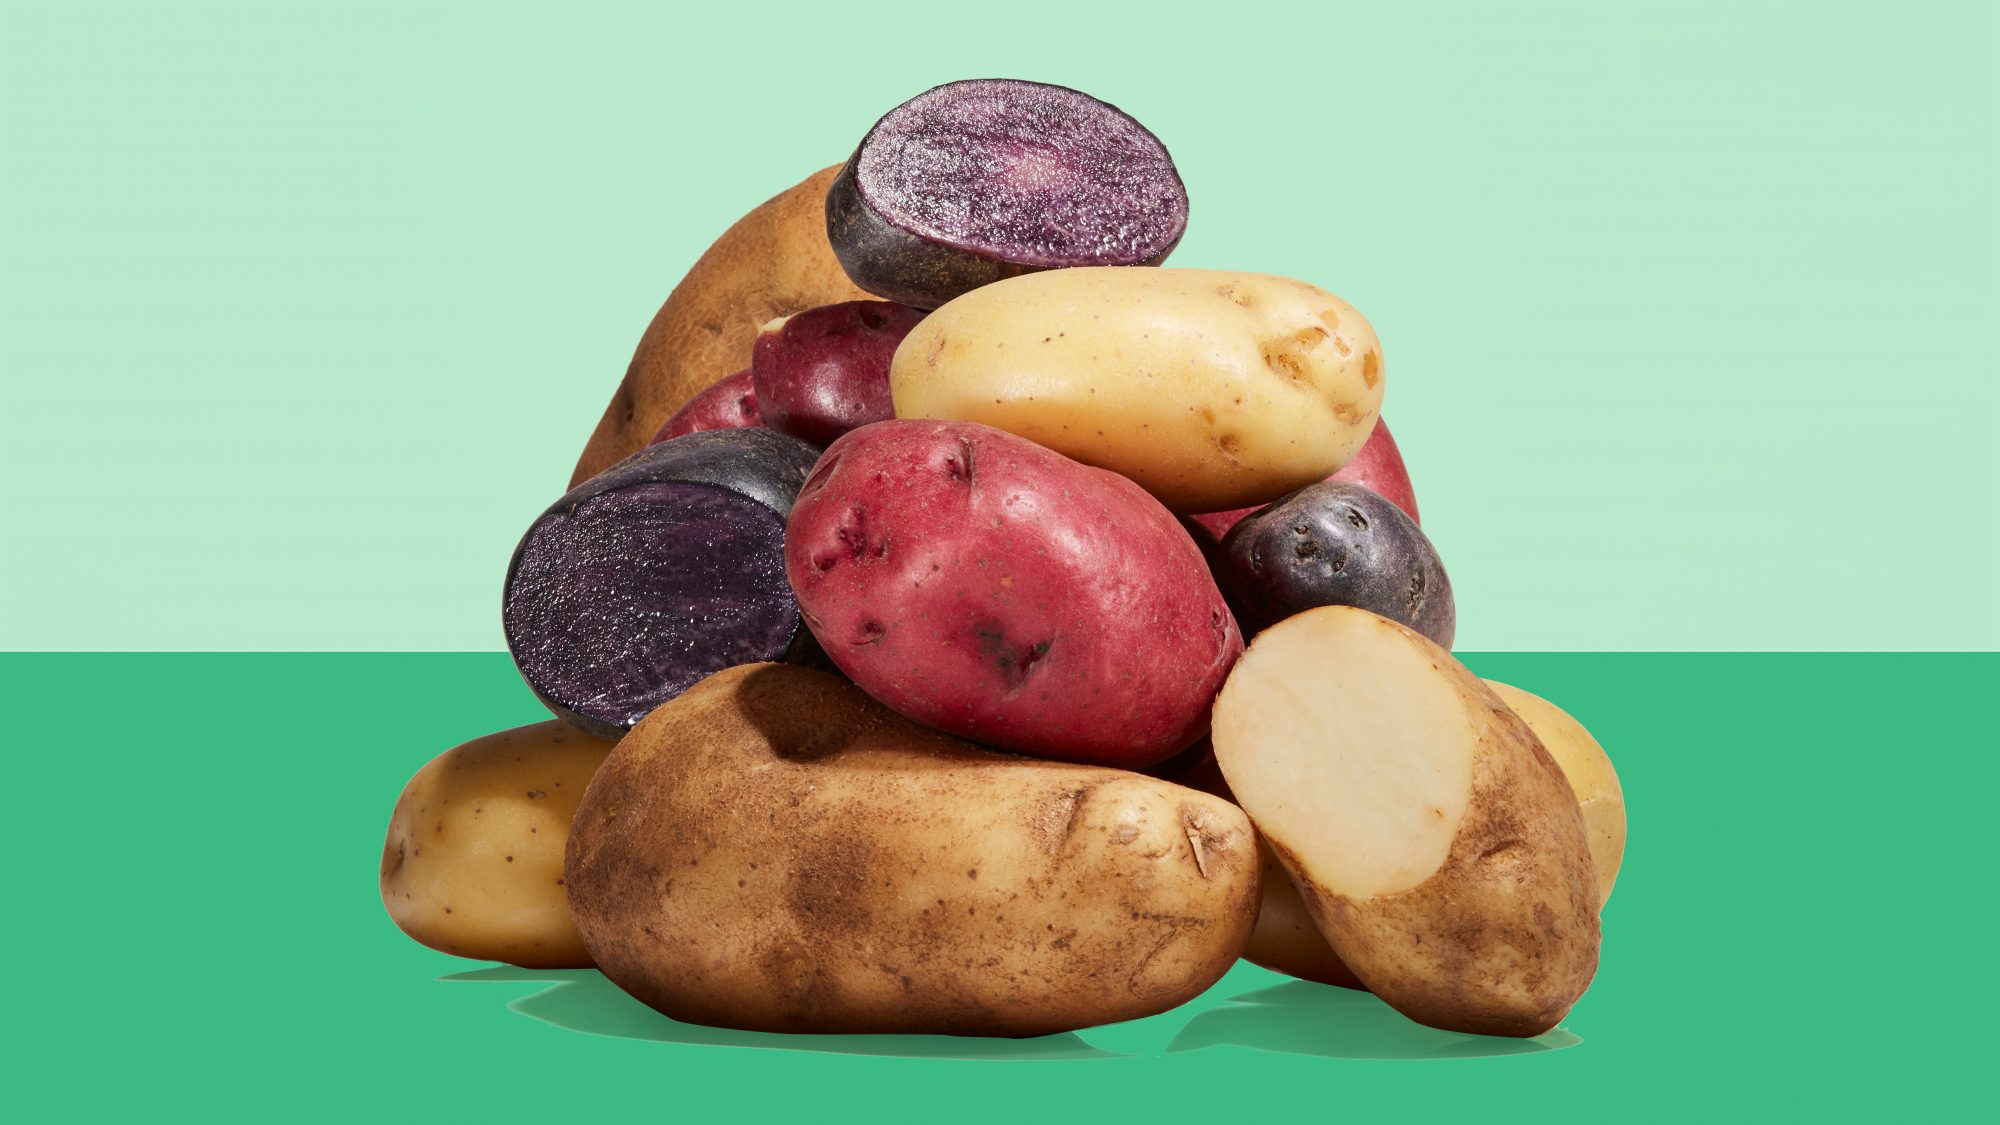 Types of potatoes - the best potato for mashed potatoes and more